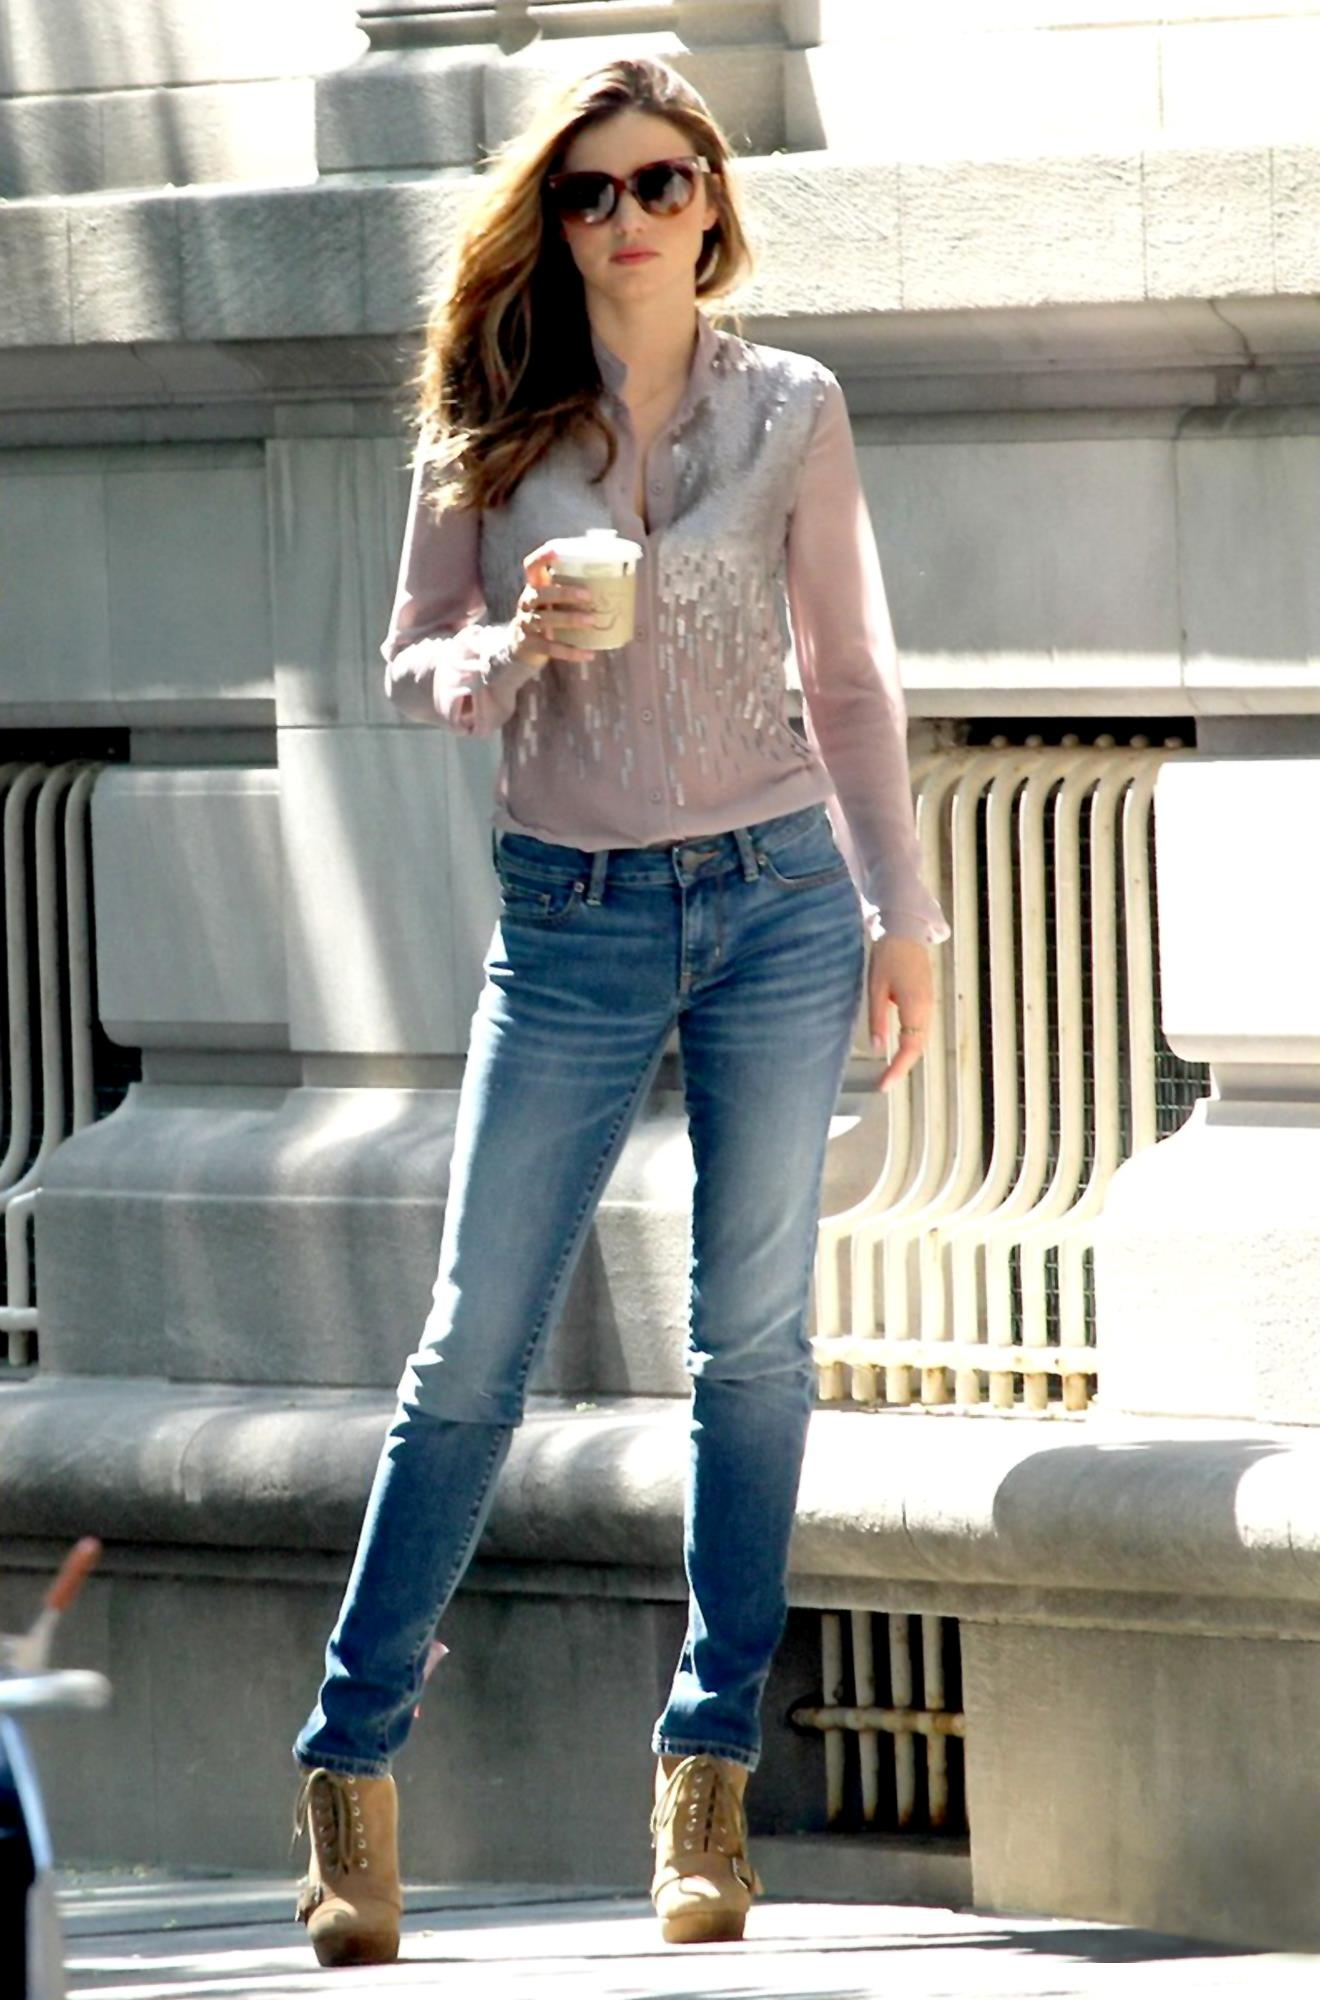 Miranda Kerr The Sexiest And Cutest Runway Model Look Stunning In Candids Photoshoot